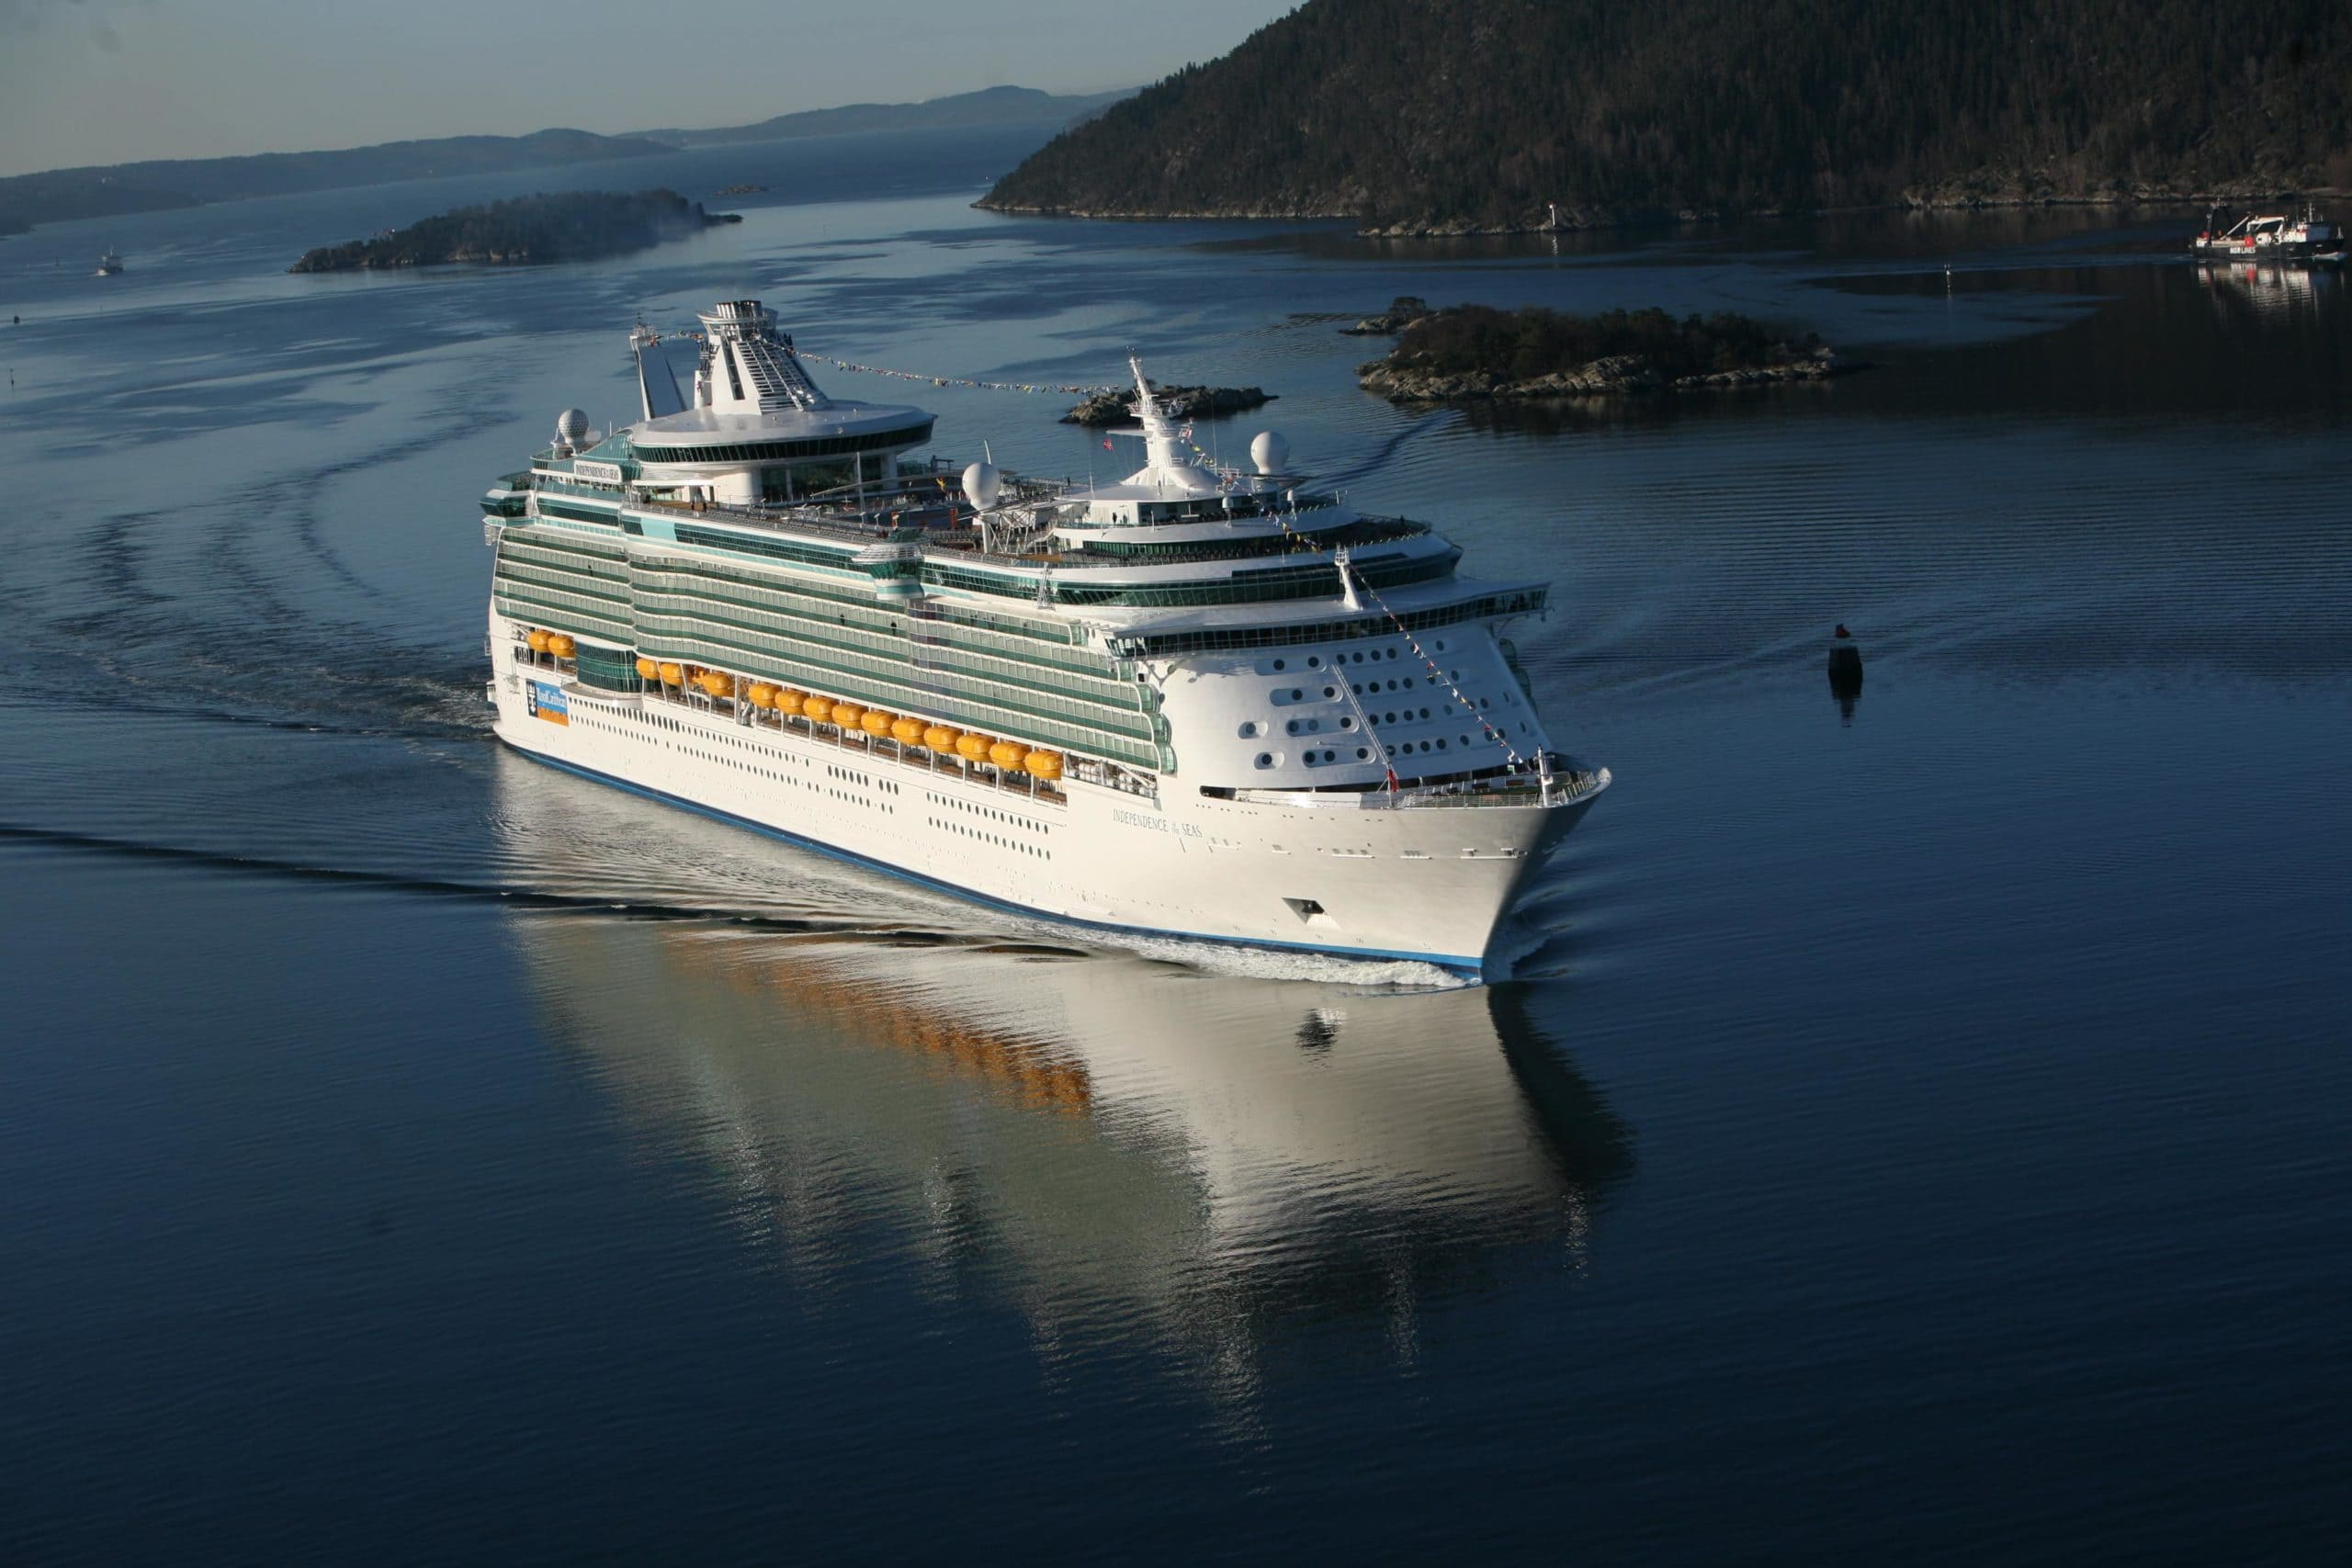 Roya Caribbean's Independence of the Seas